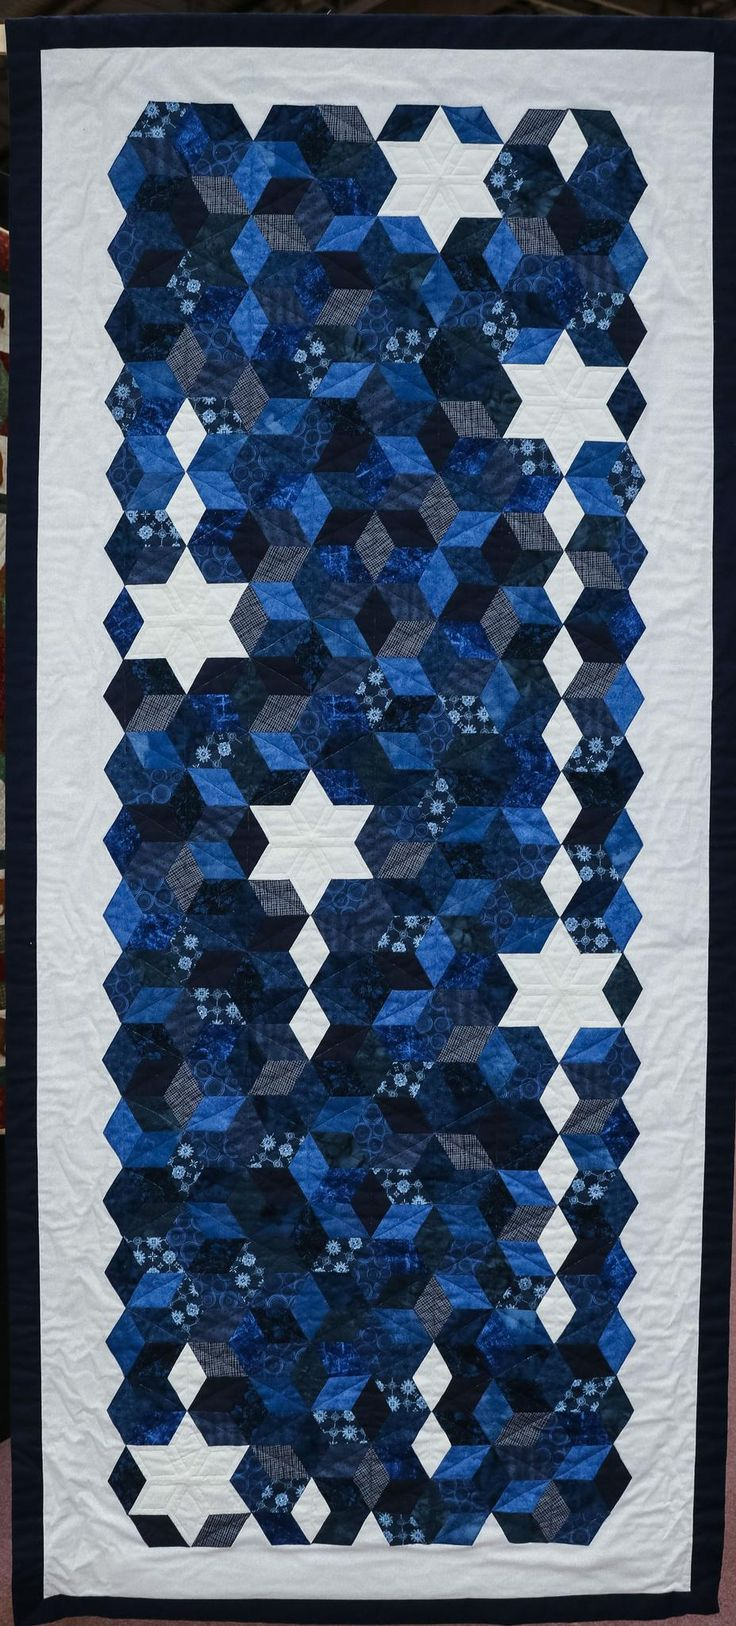 Maria Fitzgerald, Tumbling Blocks With Stars 2016 Festival Of Quilts (uk)